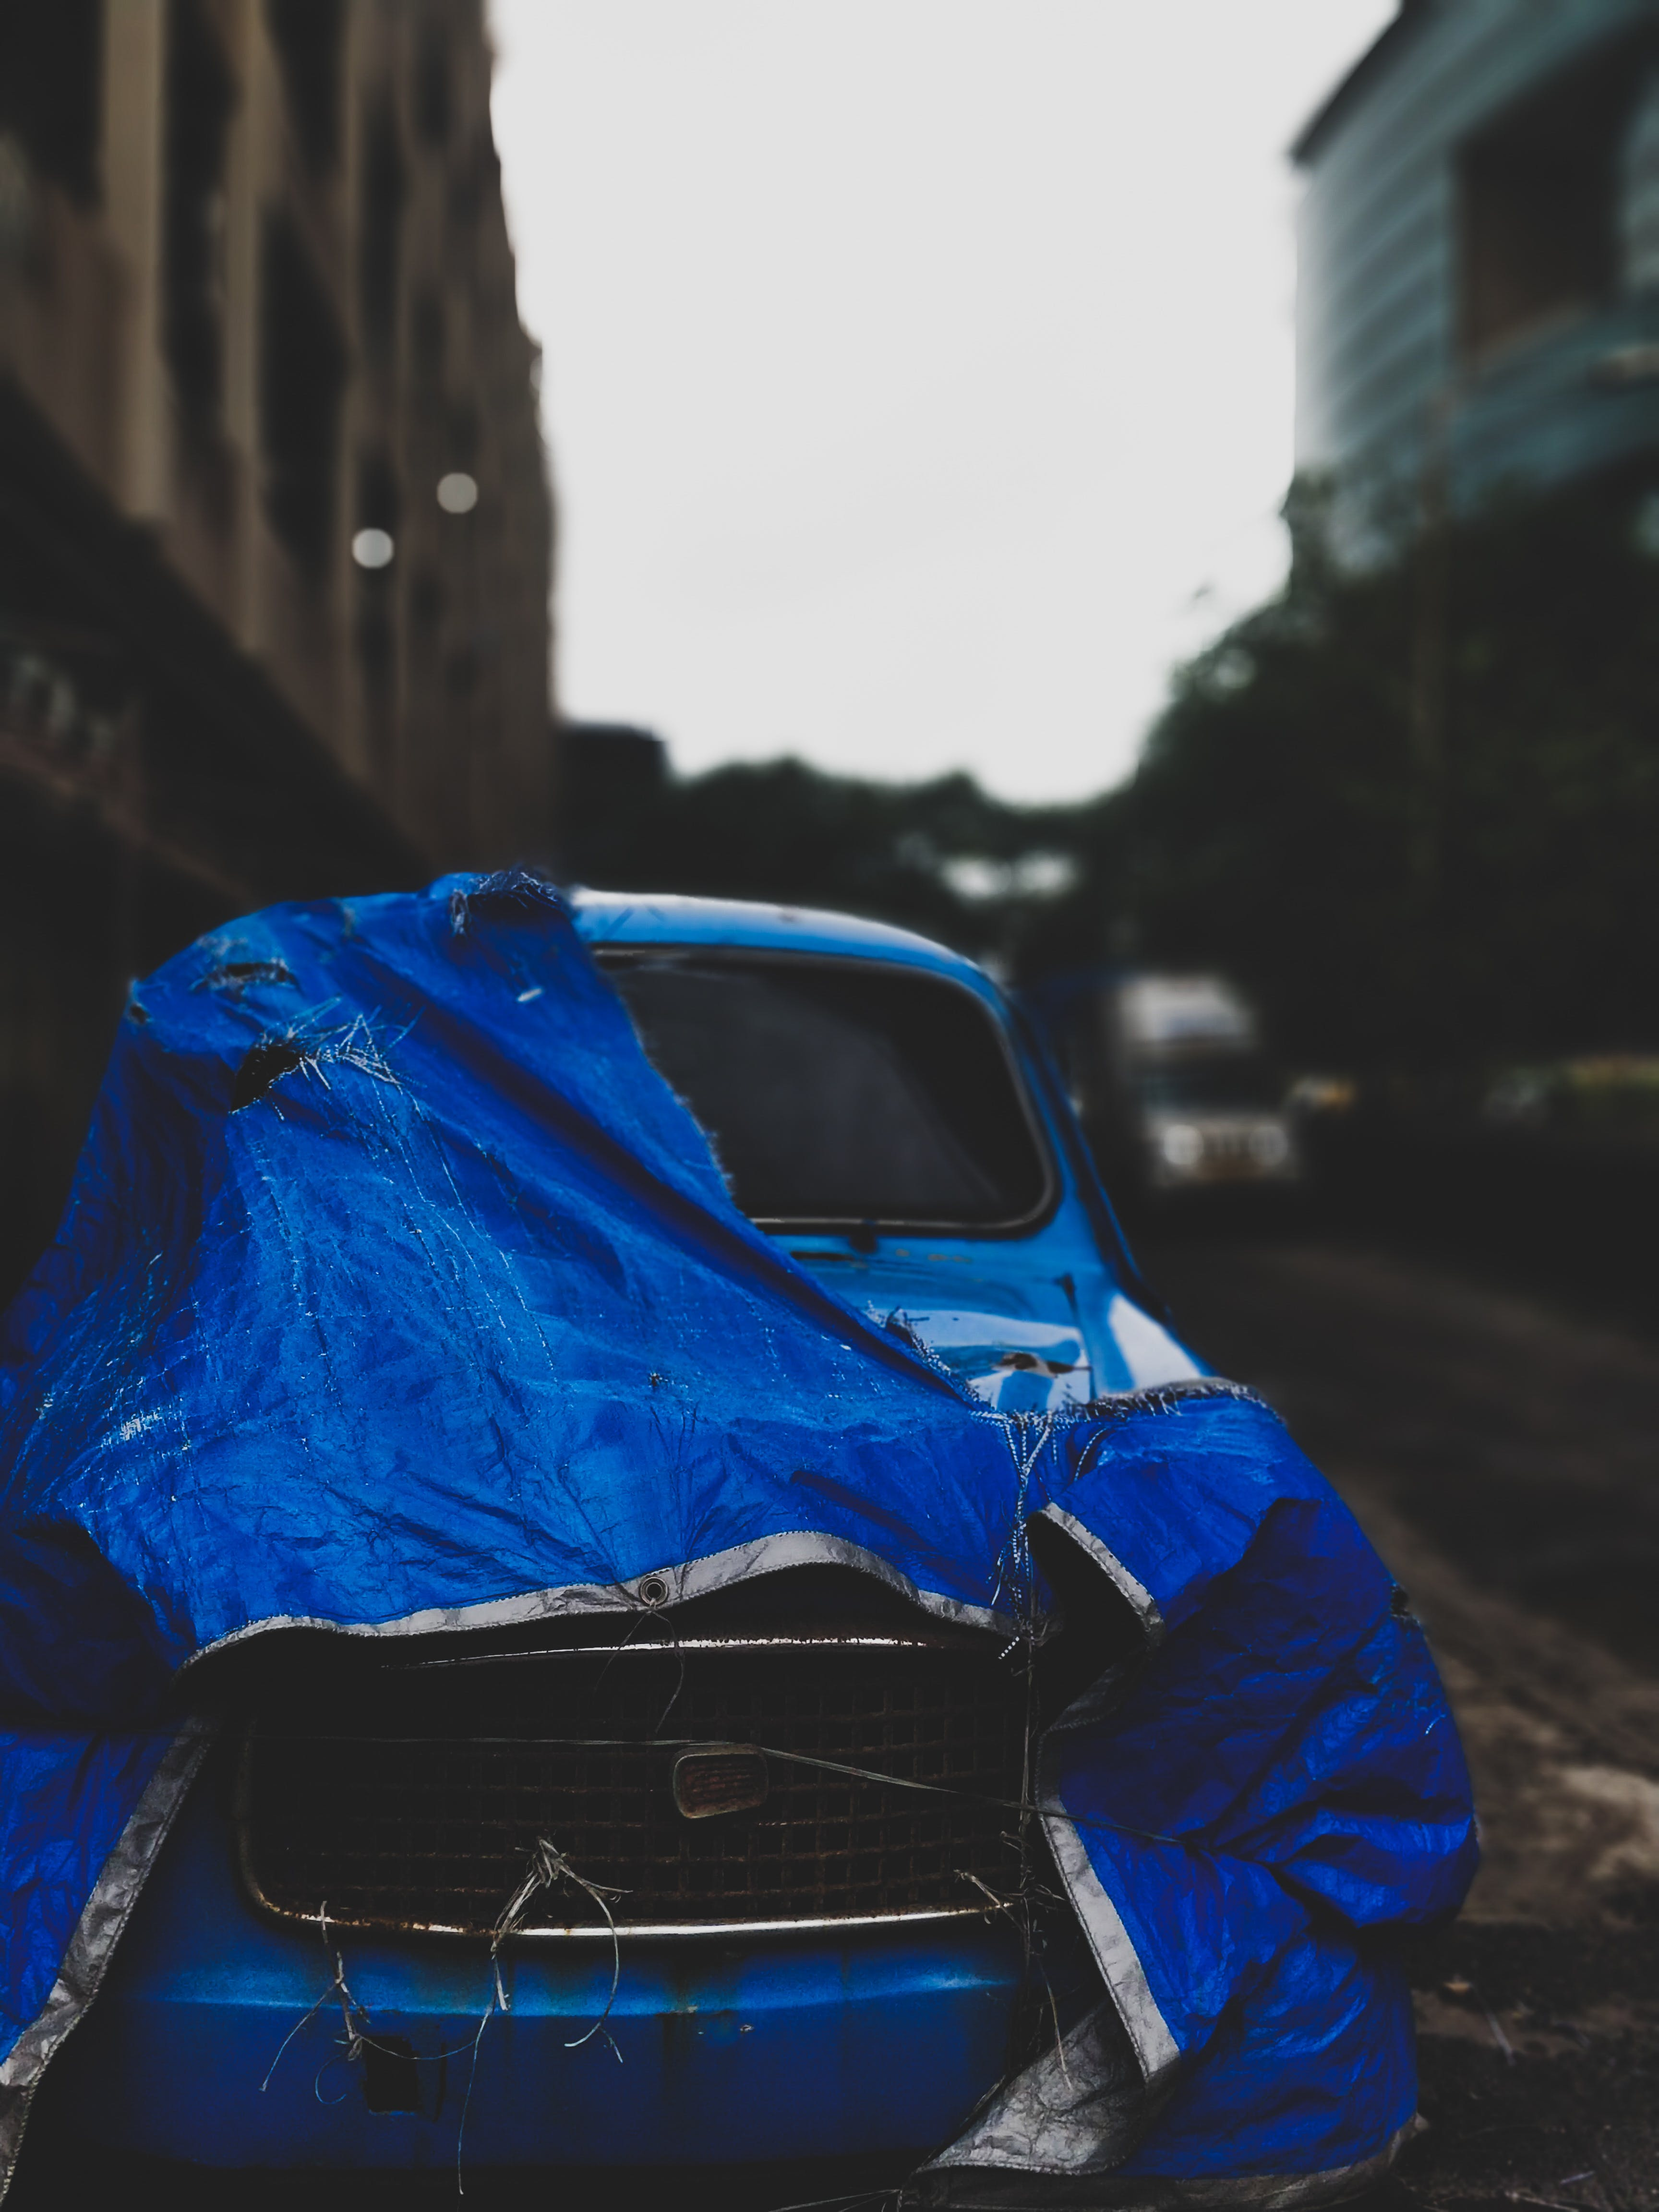 Abandoned Classic Blue Car With Blue Tarp Parked Beside Concrete Building